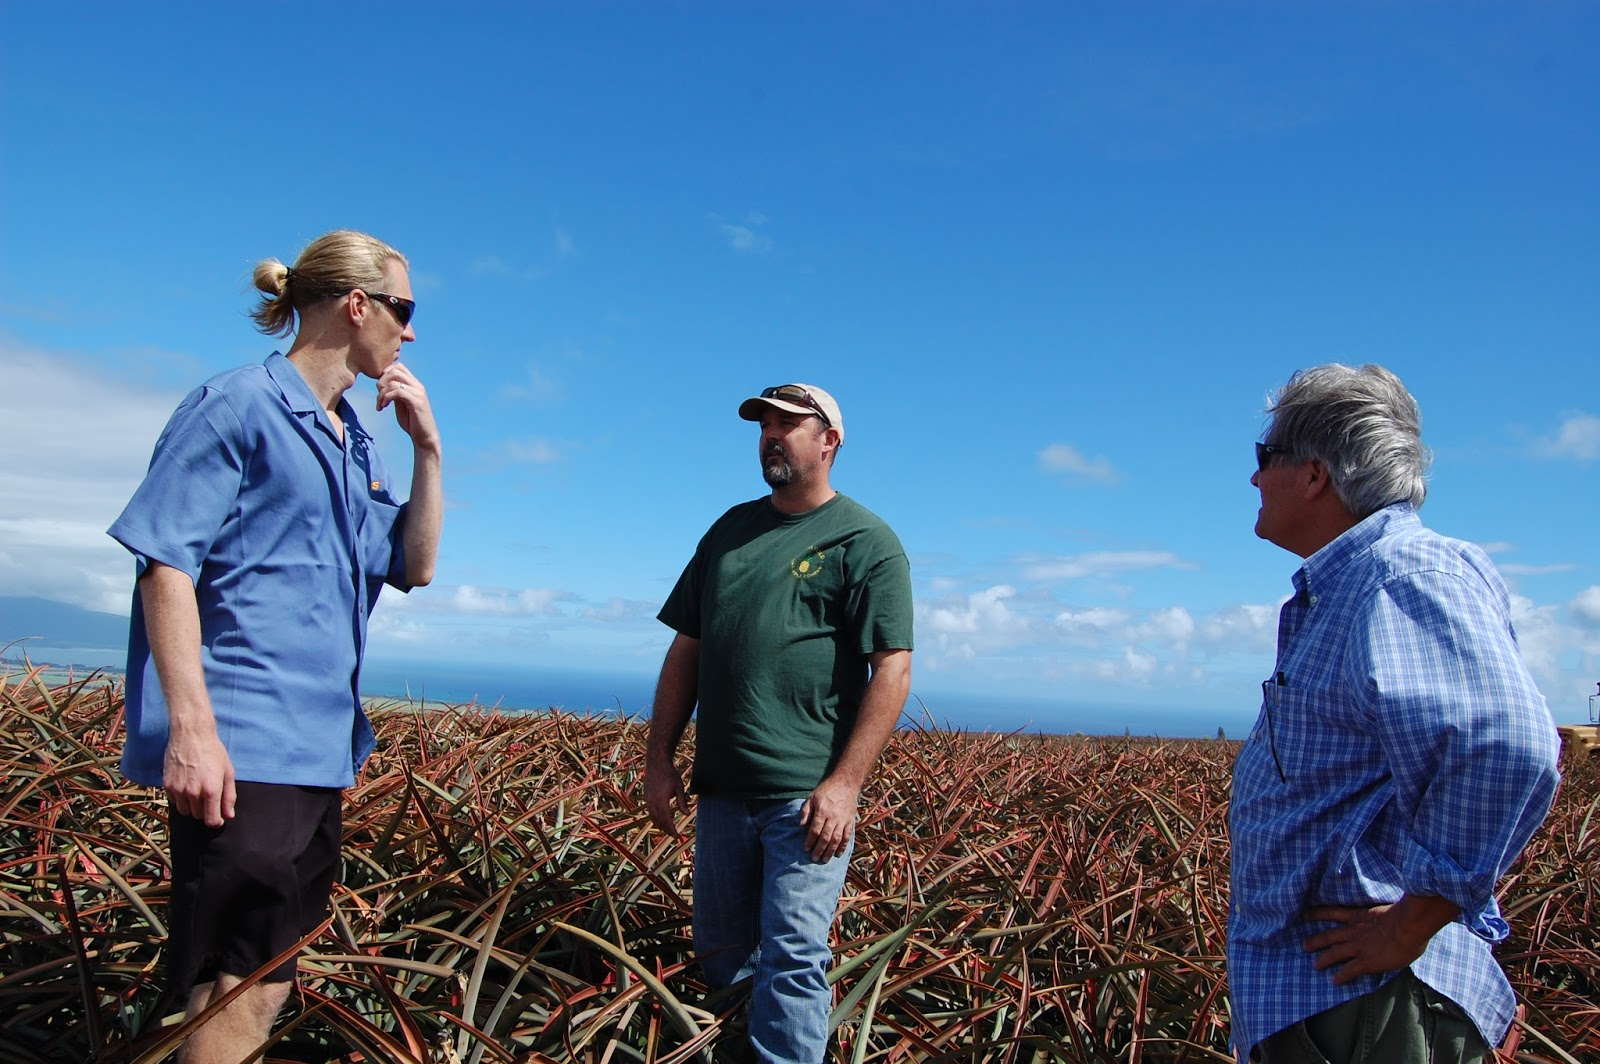 fa20d0b6944e9 IPO in Hawaii Summer of 2014 visiting Maui Land and Pineapple Fields now  Farmed by the Halemali Pineapple Company where the 73-50 (Maui Gold)  Pineapples are ...